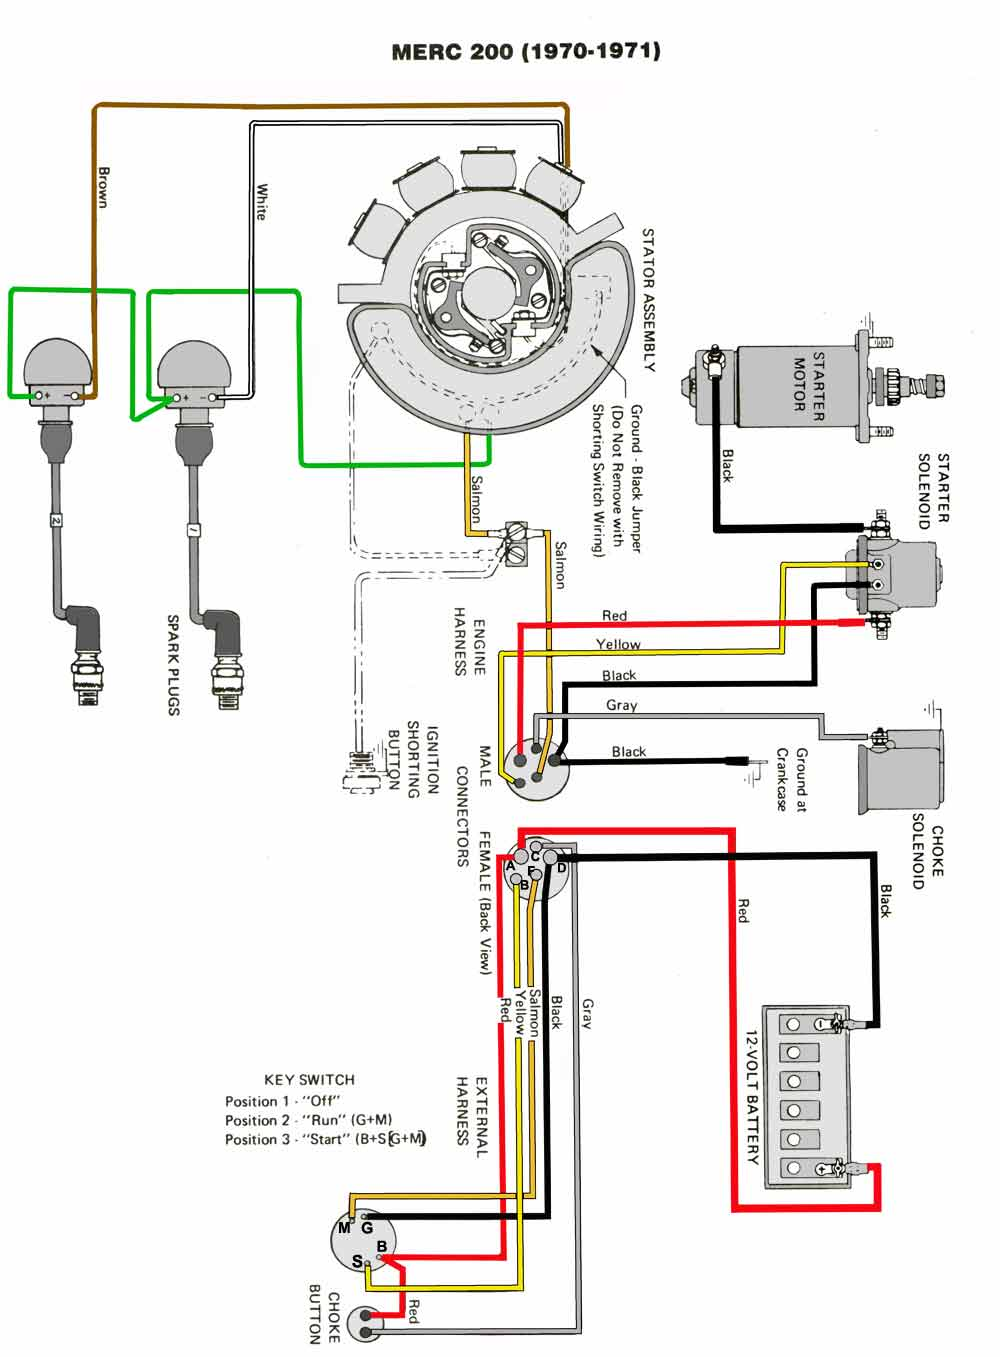 Strange Mercury Marine Wiring Harness Diagram General Wiring Diagram Data Wiring 101 Akebretraxxcnl